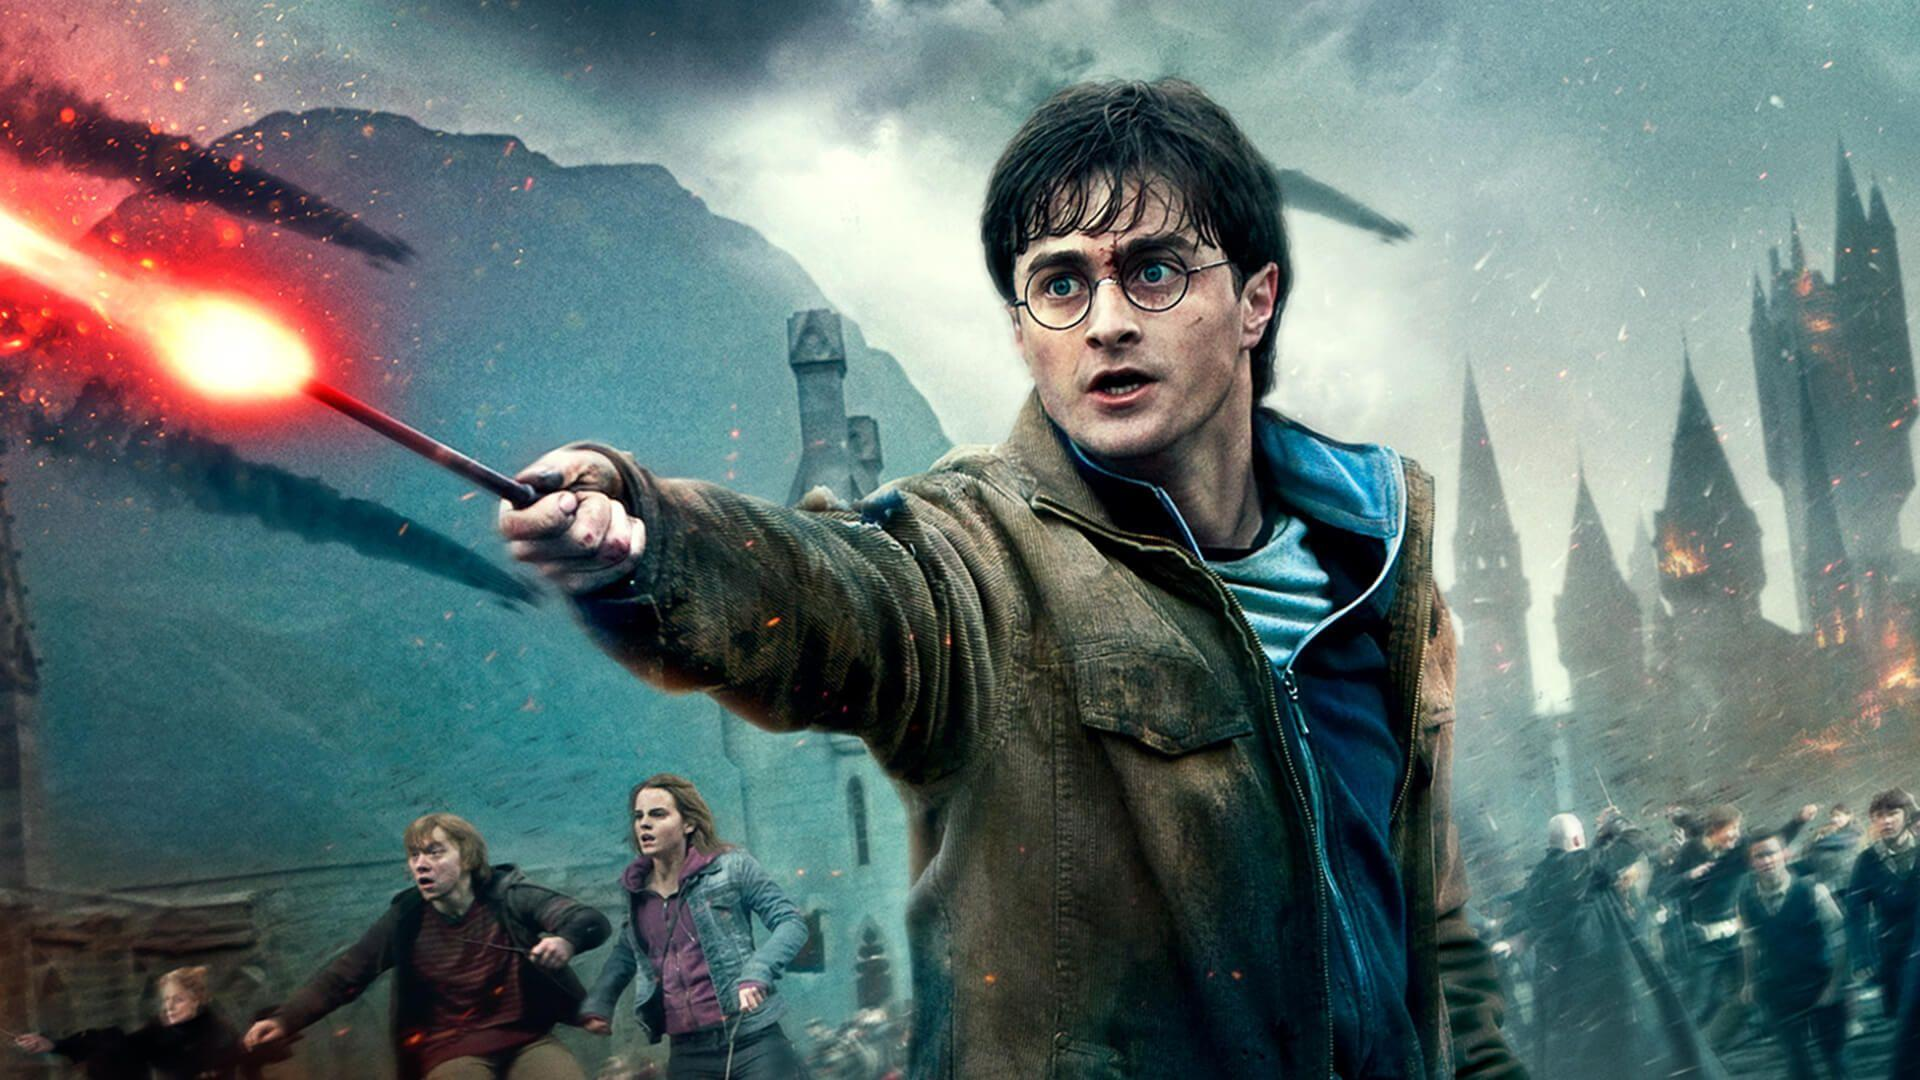 A New 'Harry Potter' Film Is In The Works, And It Will Have The Original Cast